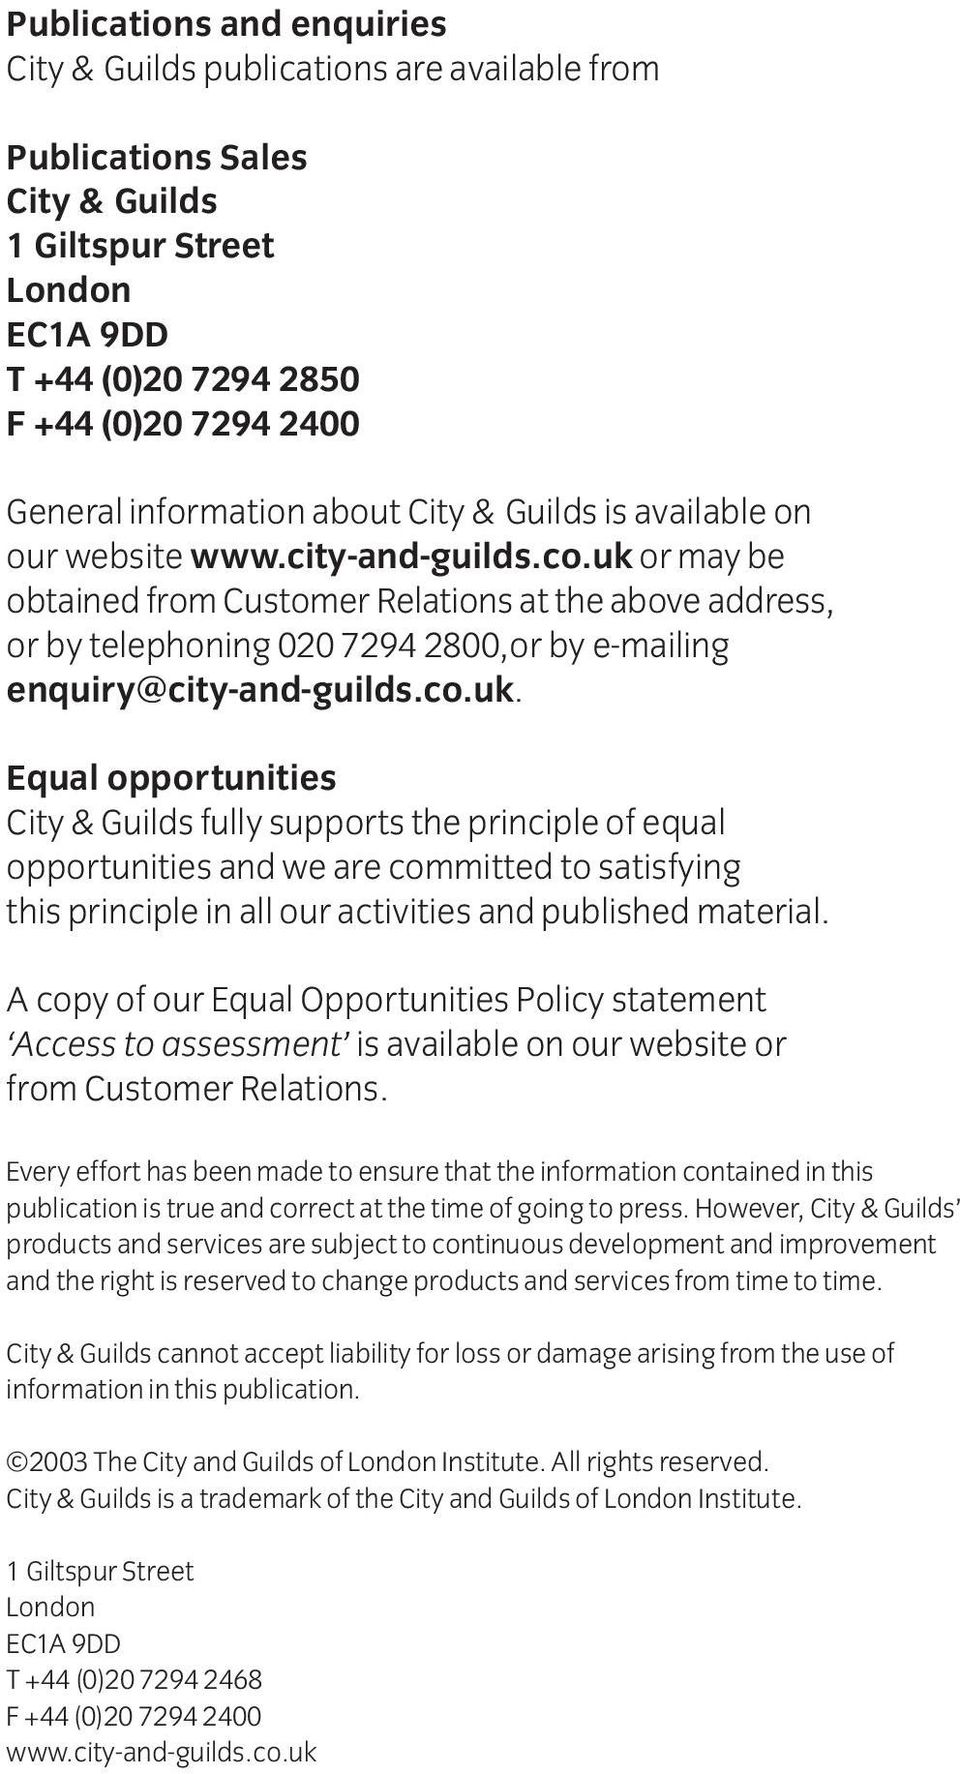 uk or may be obtained from Customer Relations at the above address, or by telephoning 020 7294 2800,or by e-mailing enquiry@city-and-guilds.co.uk. Equal opportunities City & Guilds fully supports the principle of equal opportunities and we are committed to satisfying this principle in all our activities and published material.